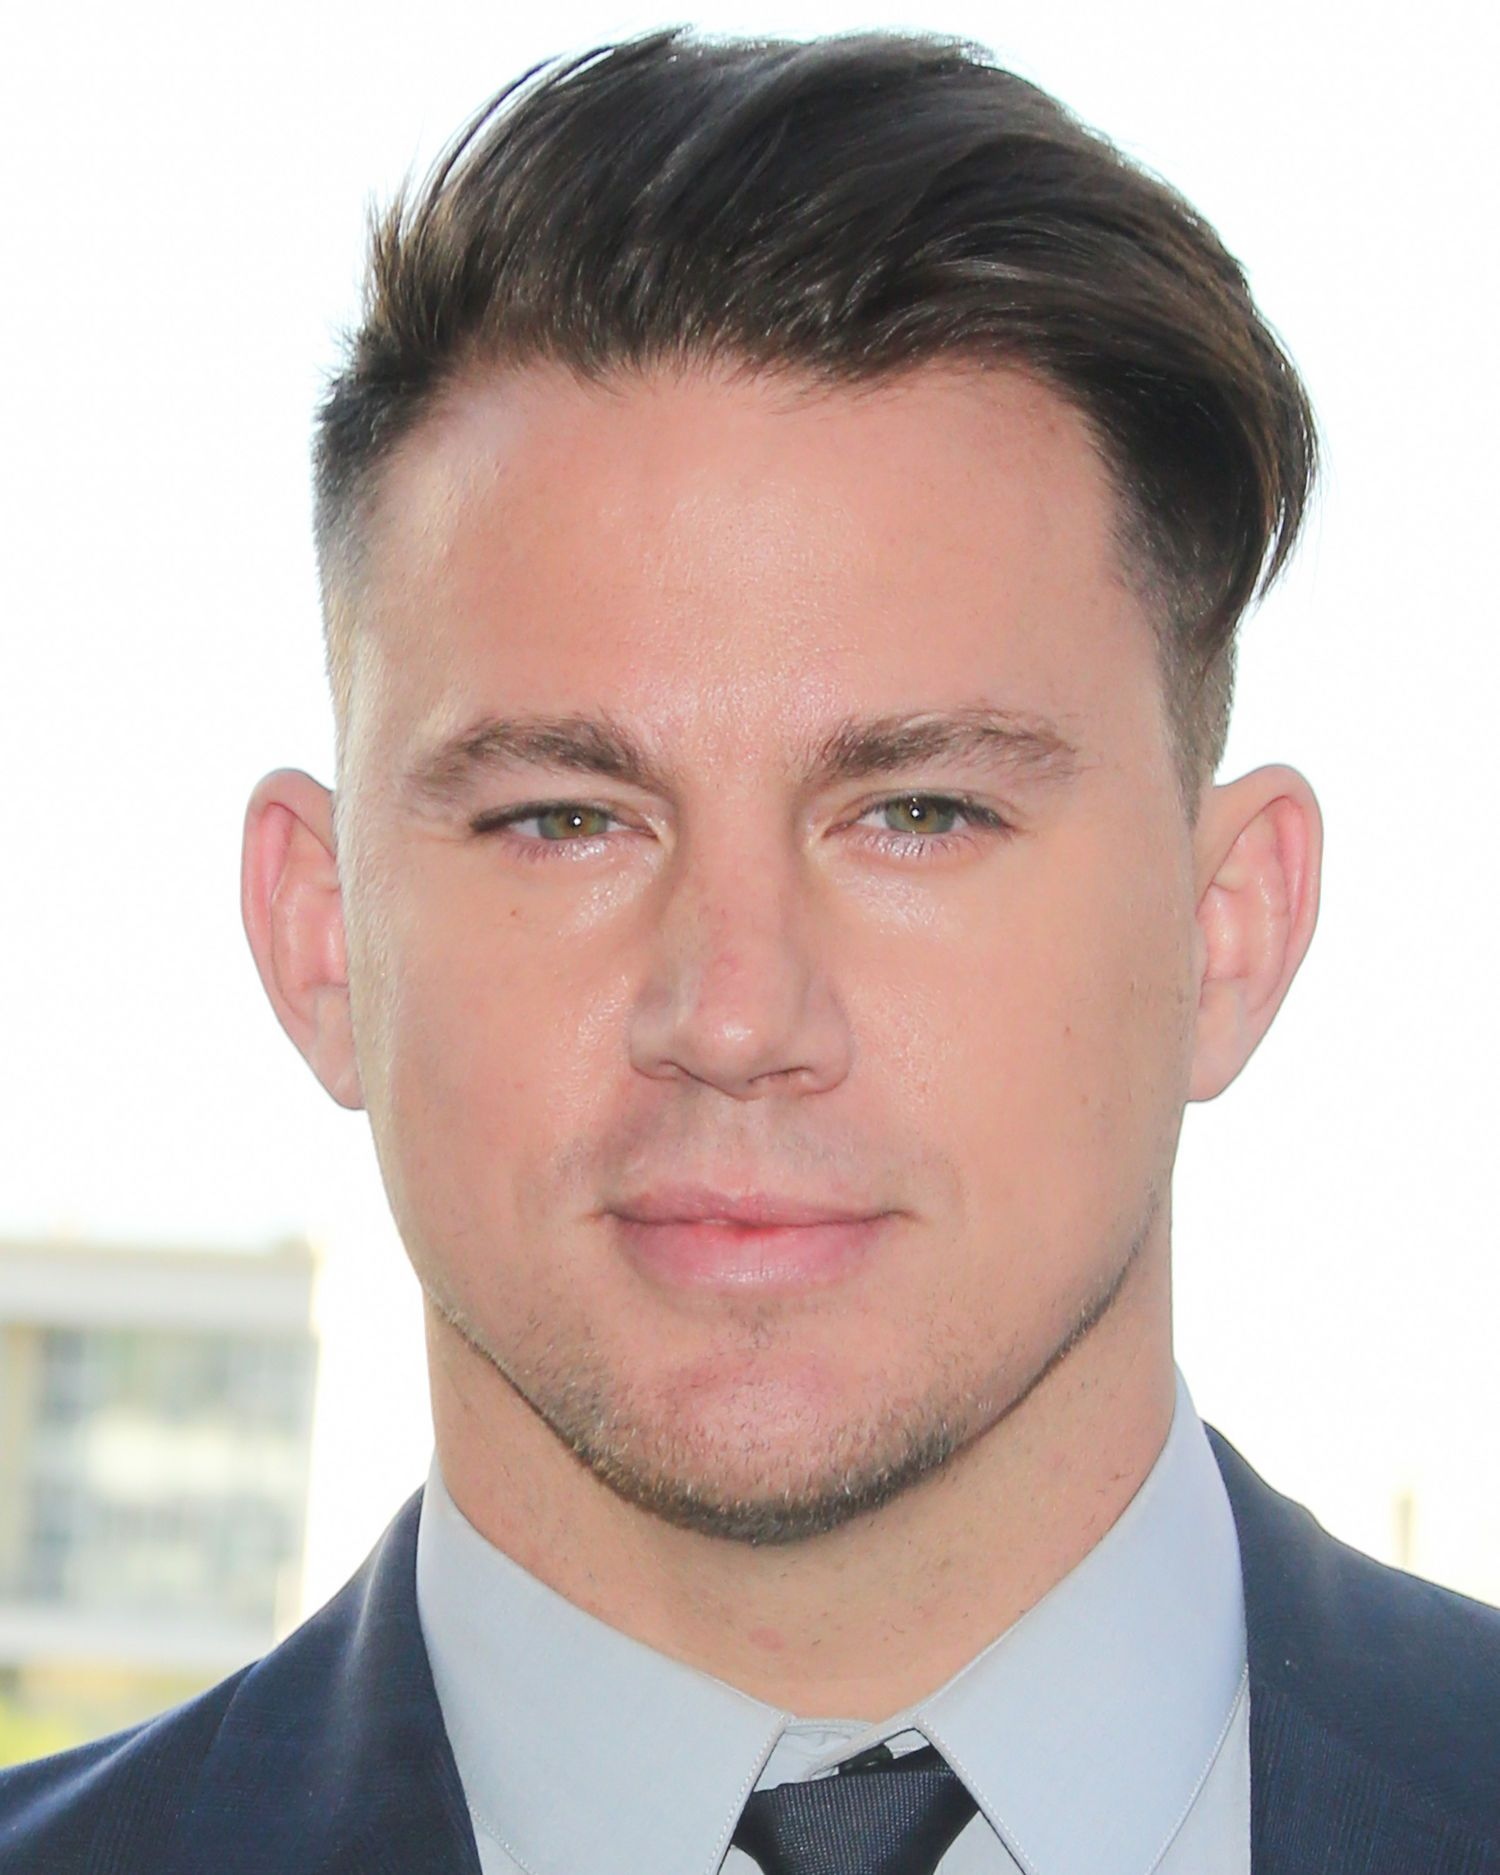 Cool Best Channing Tatum Haircut and Hairstyles 2016 Check ... Channing Tatum